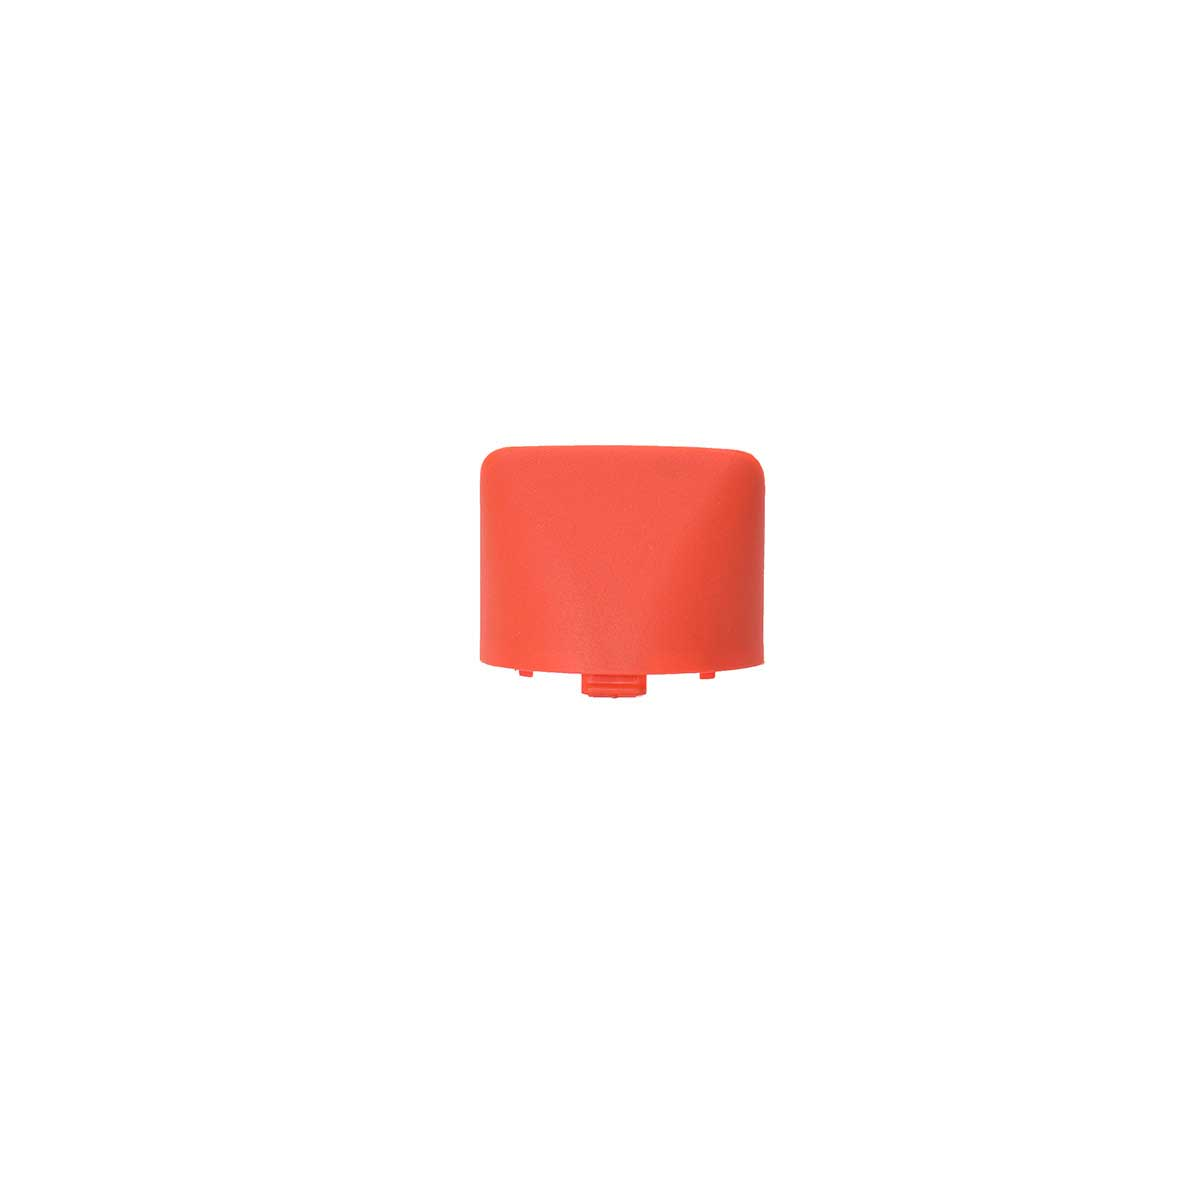 Buy Blaze Orange Drive Cap For AGC Andis Clippers at Ryan's Pet Supplies